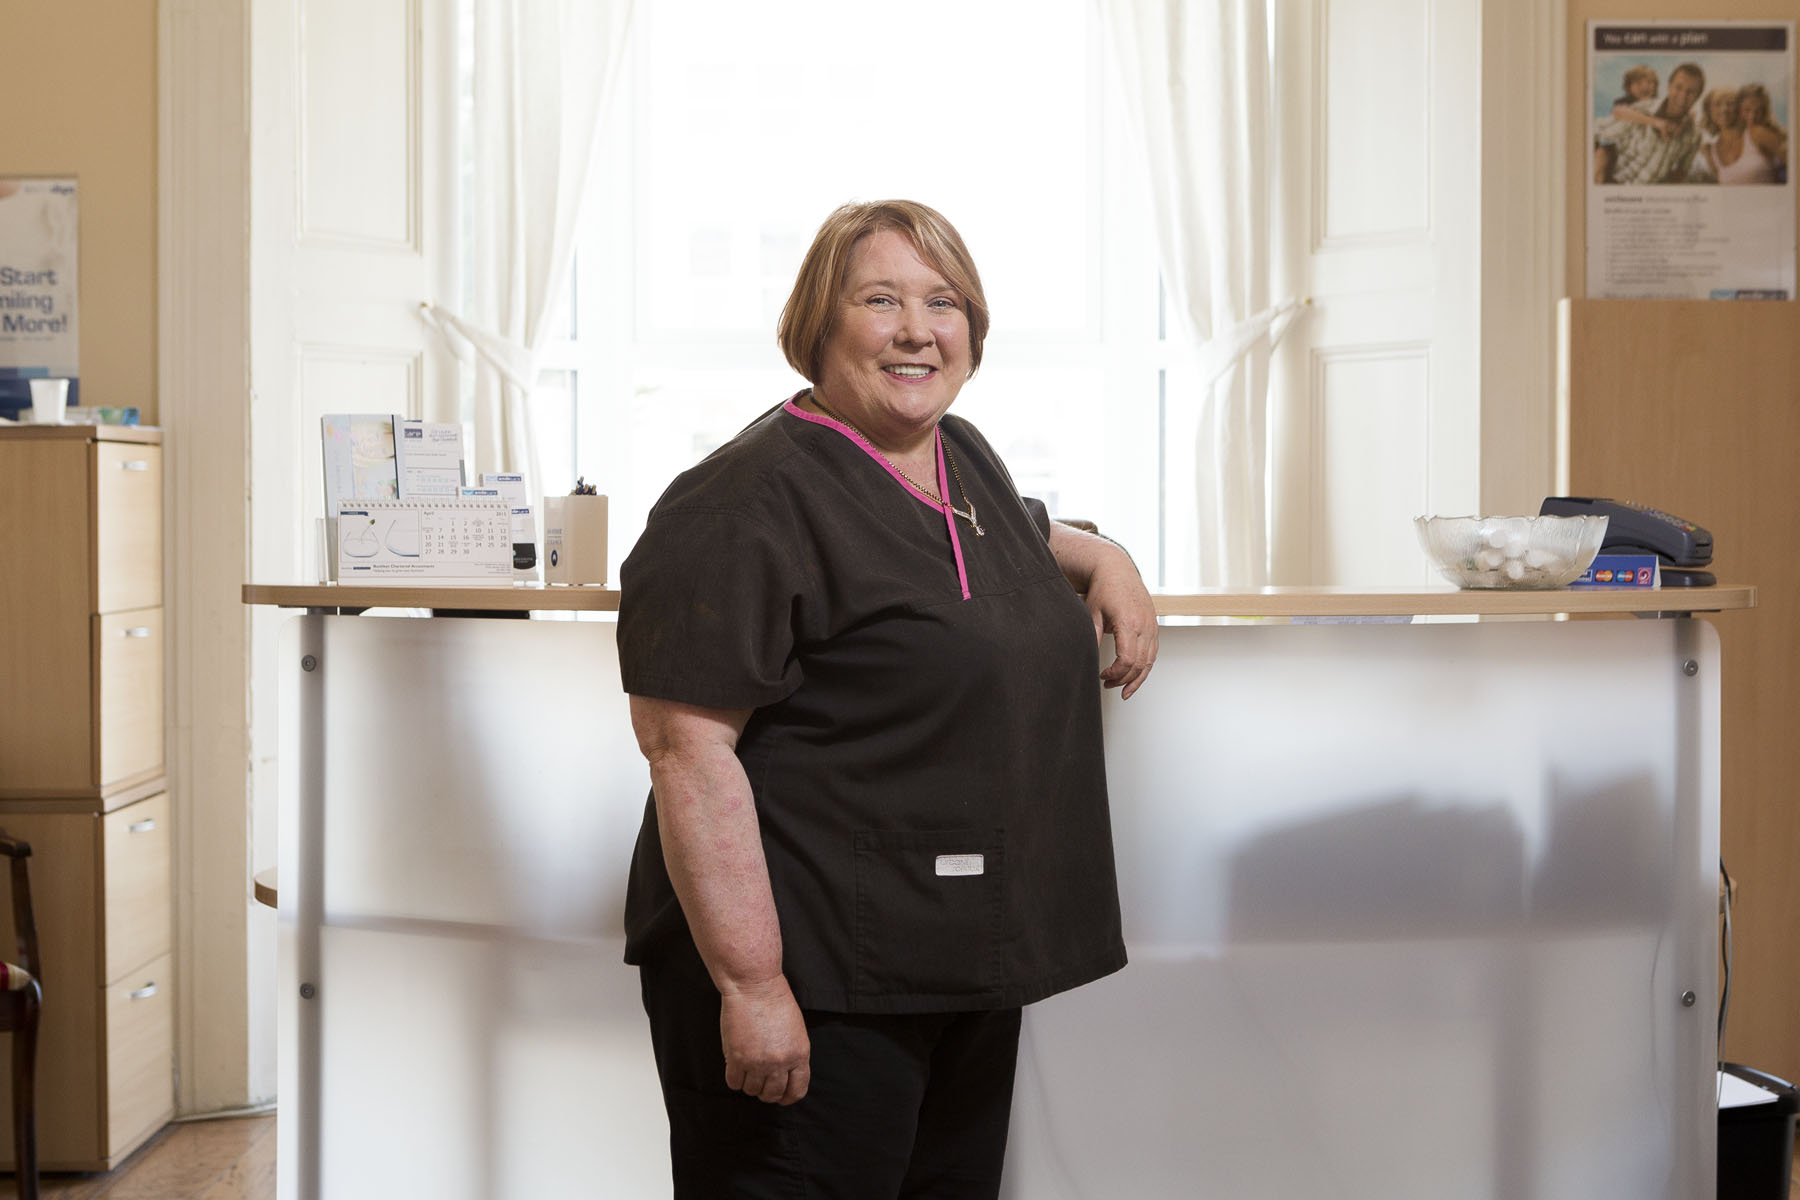 Jan Baxendale, Dental Hygienist